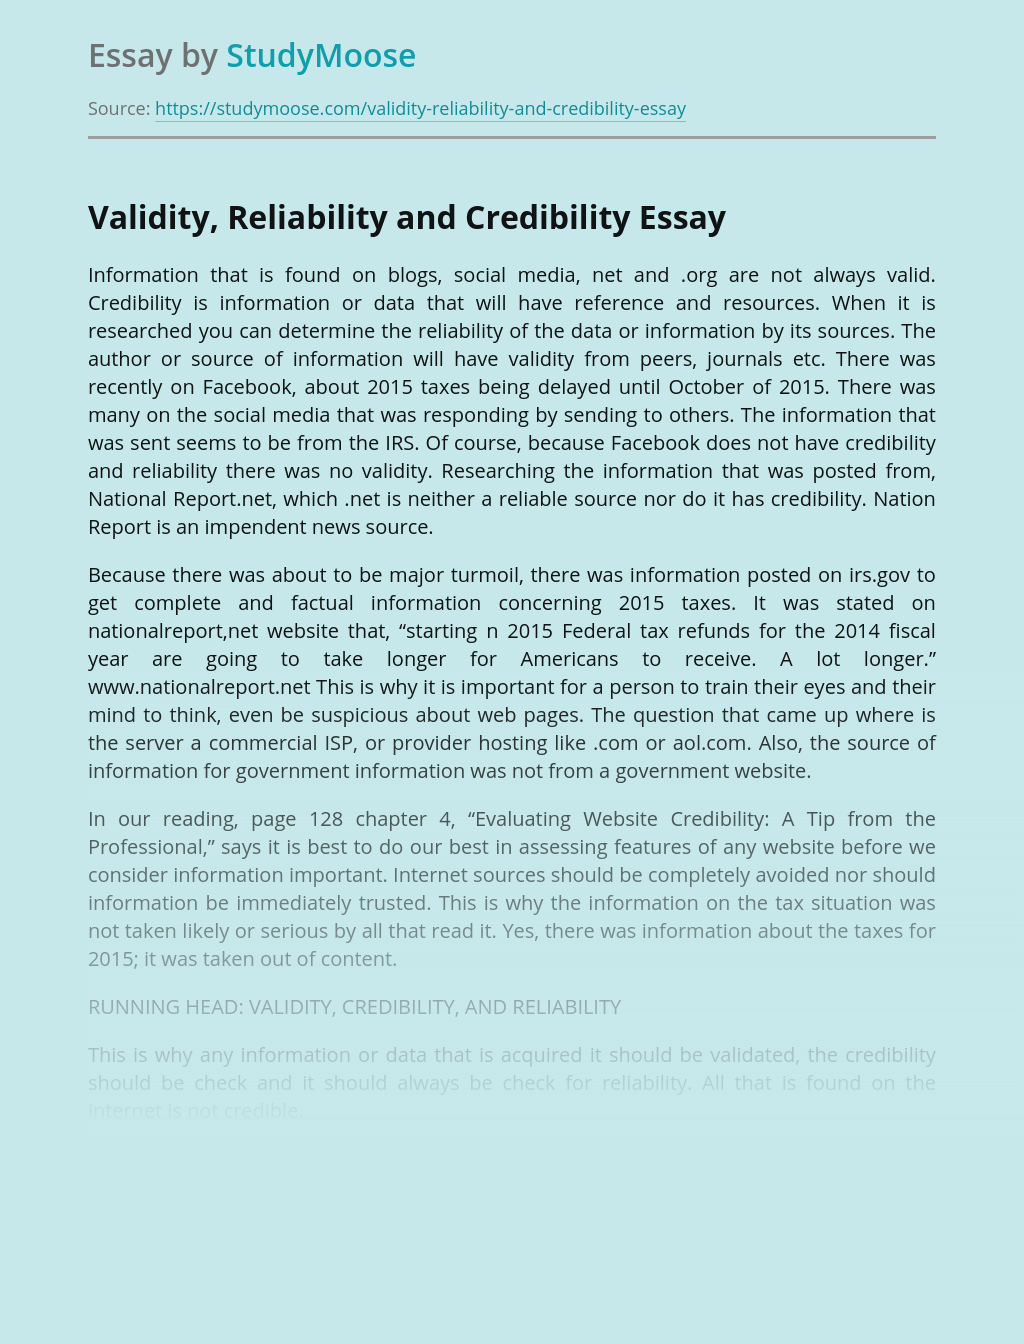 Validity, Reliability and Credibility